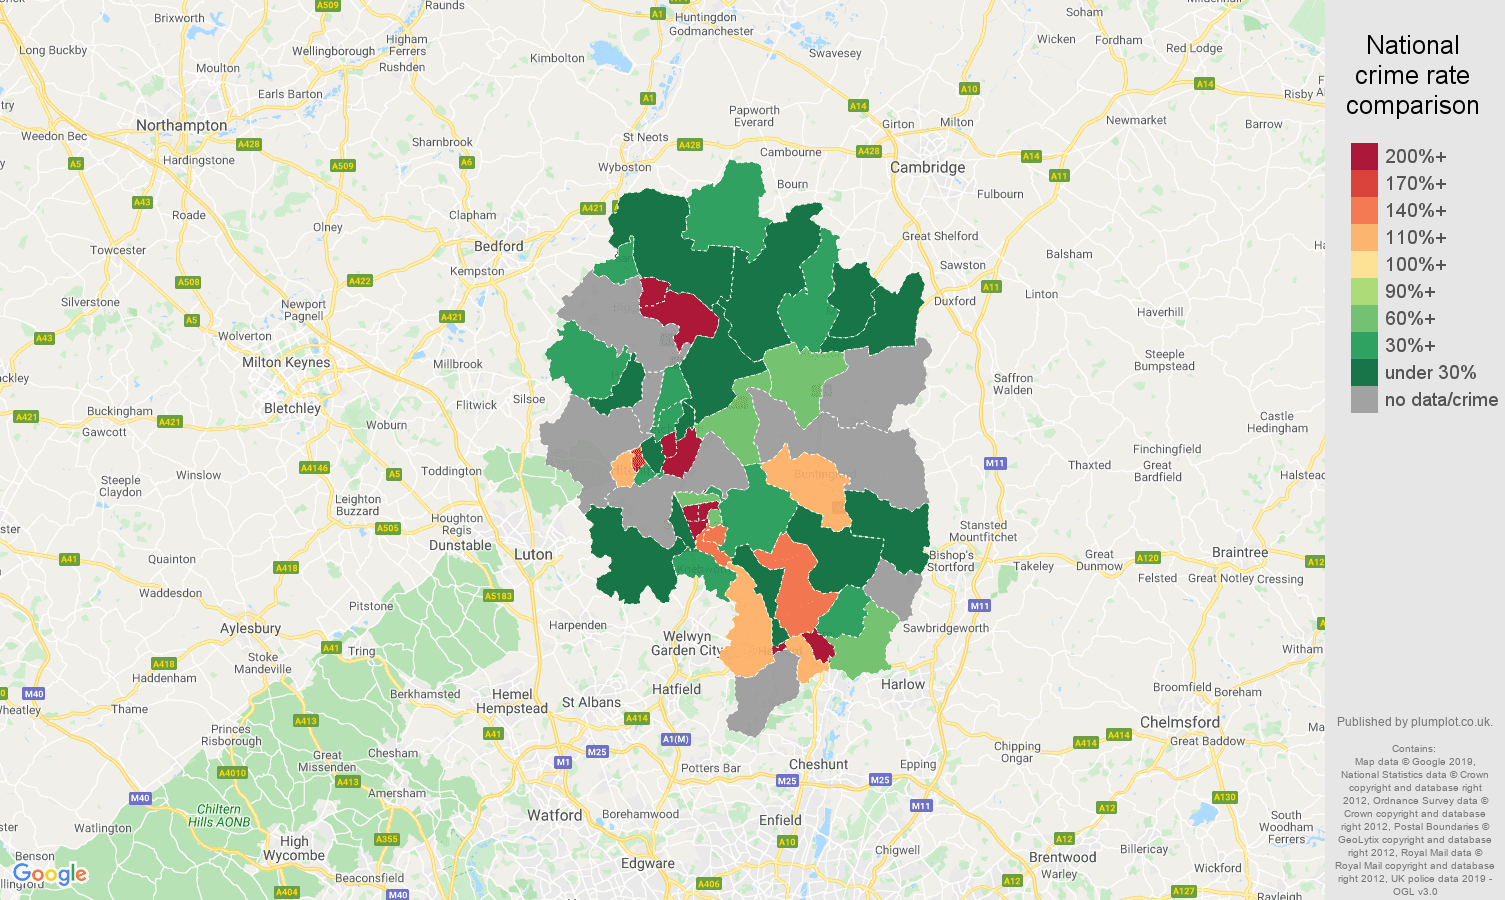 Stevenage shoplifting crime rate comparison map